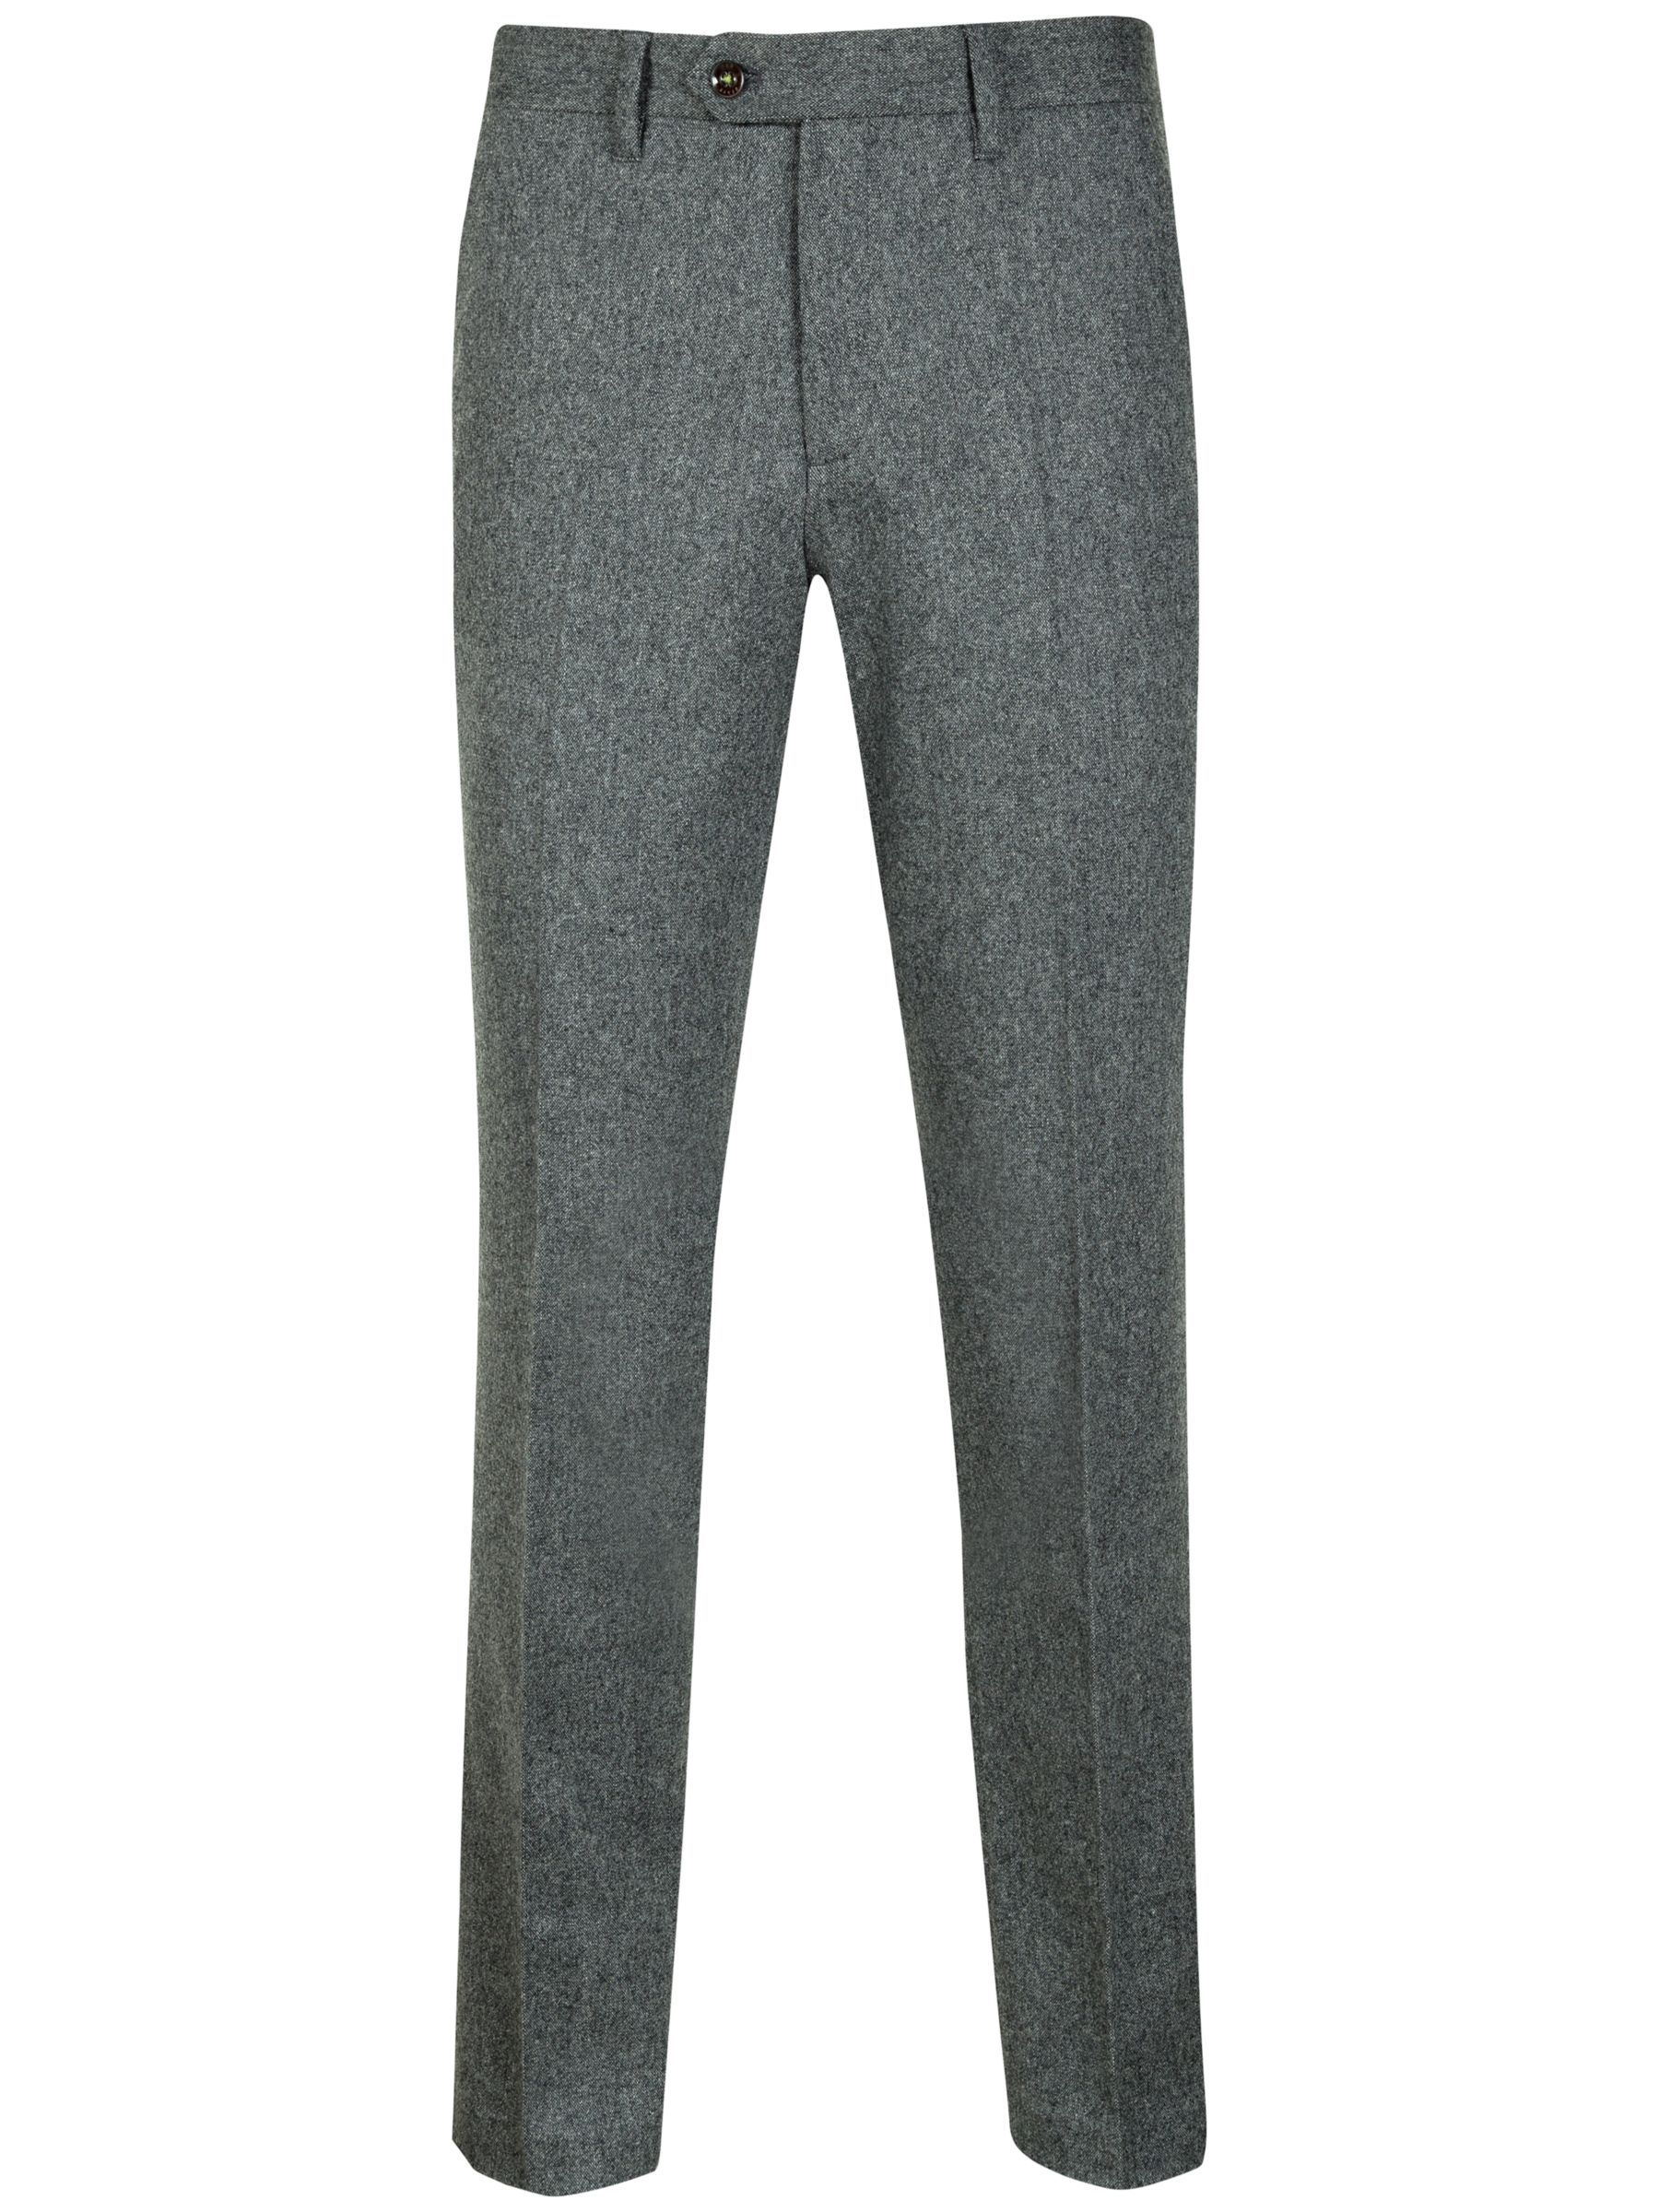 Ted Baker Fortero Wool Trousers, Grey